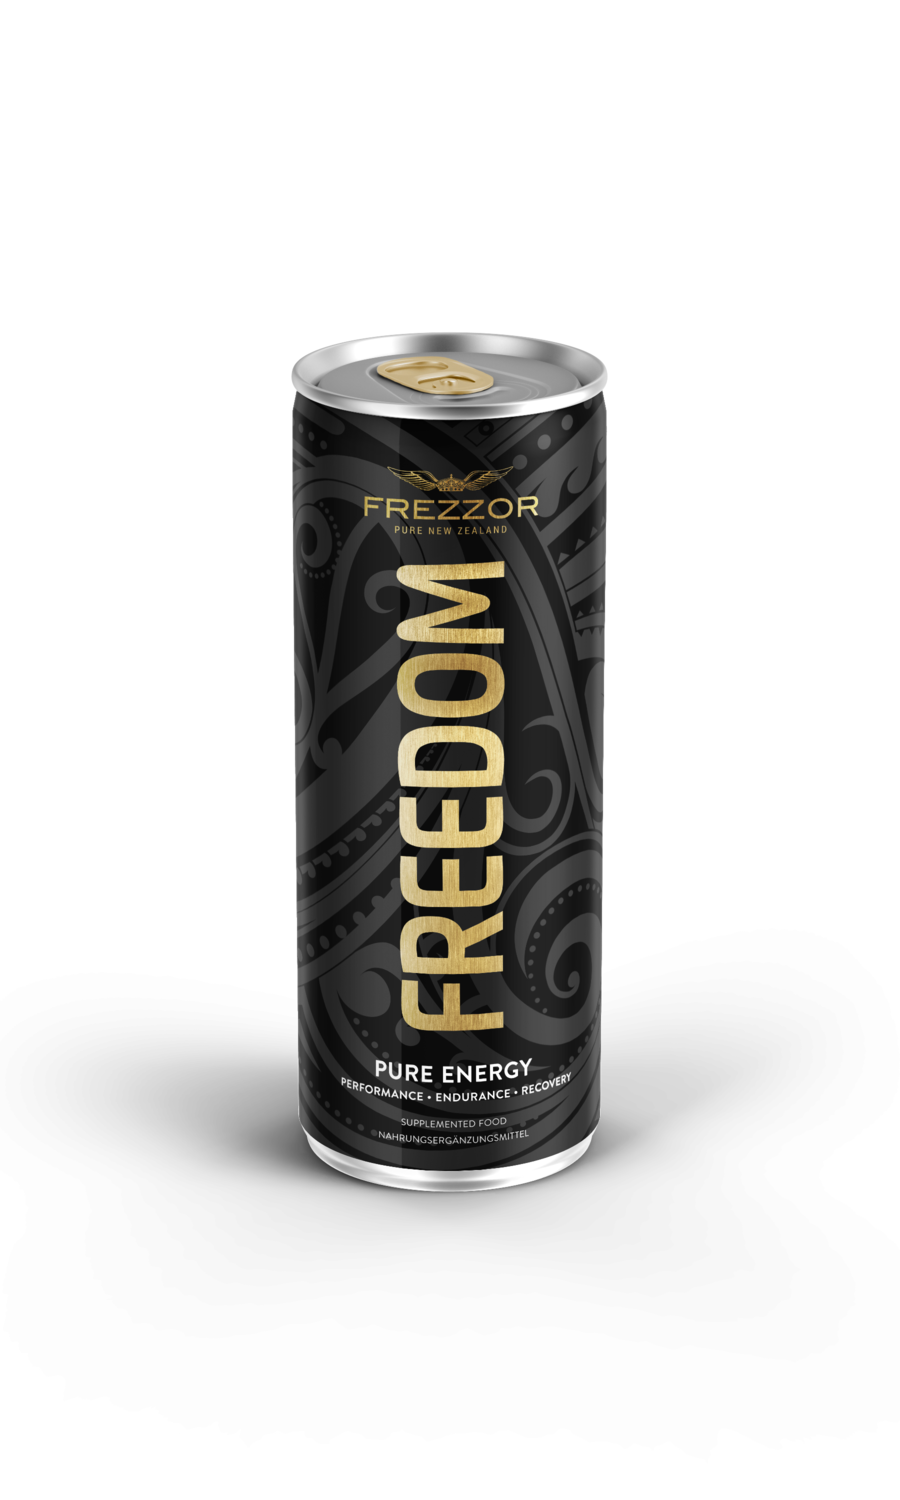 Freedom energy drink (250ml)